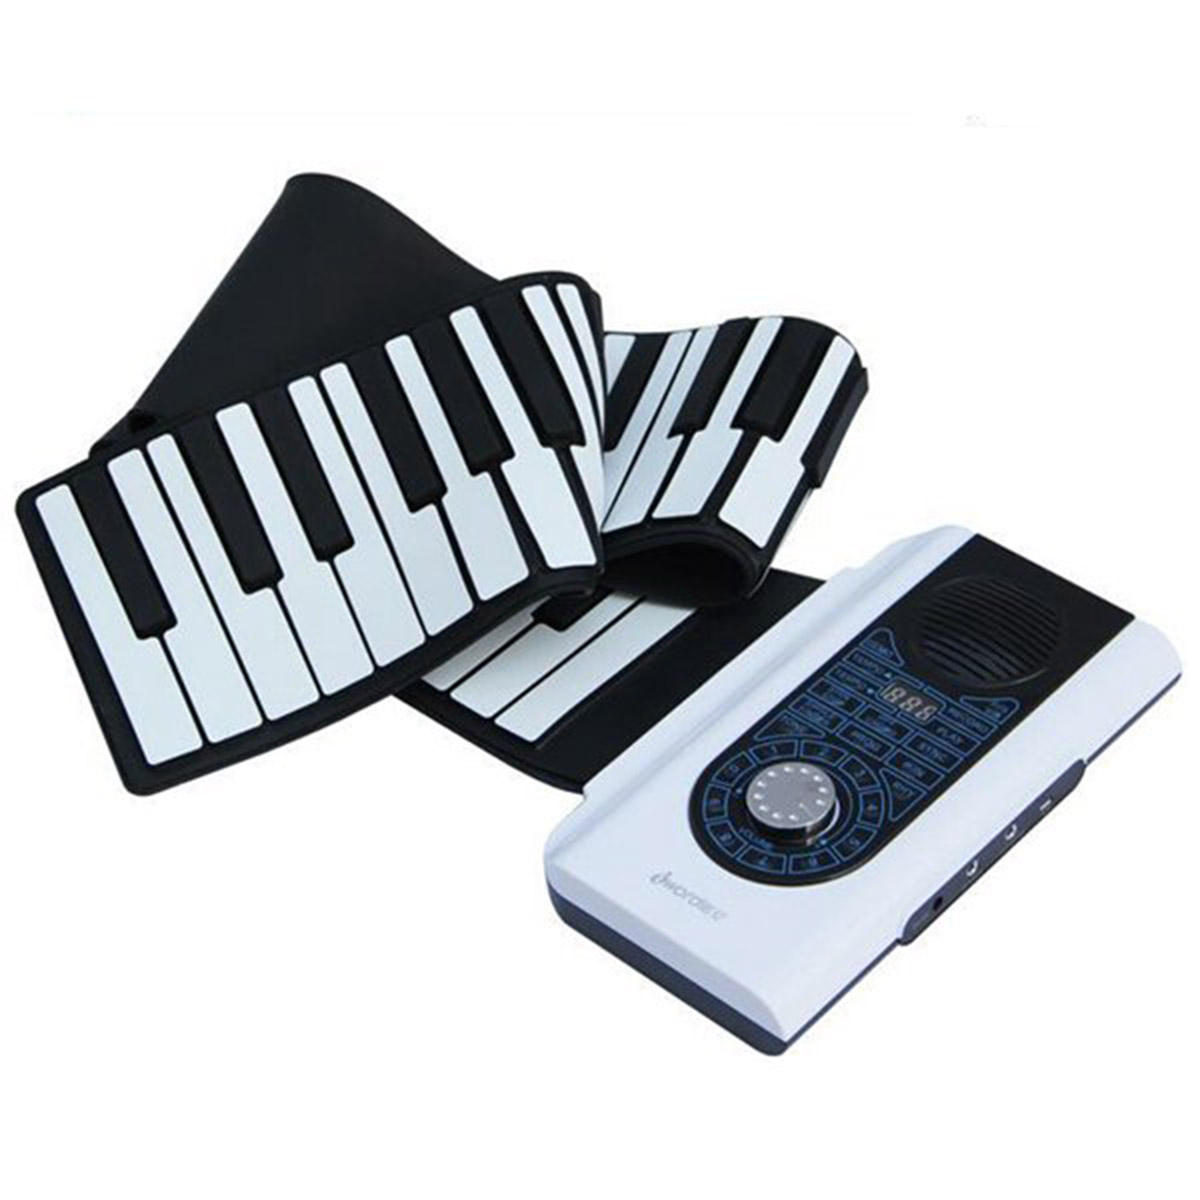 iword 88 key professional roll up piano with midi keyboard Sale - Banggood.com